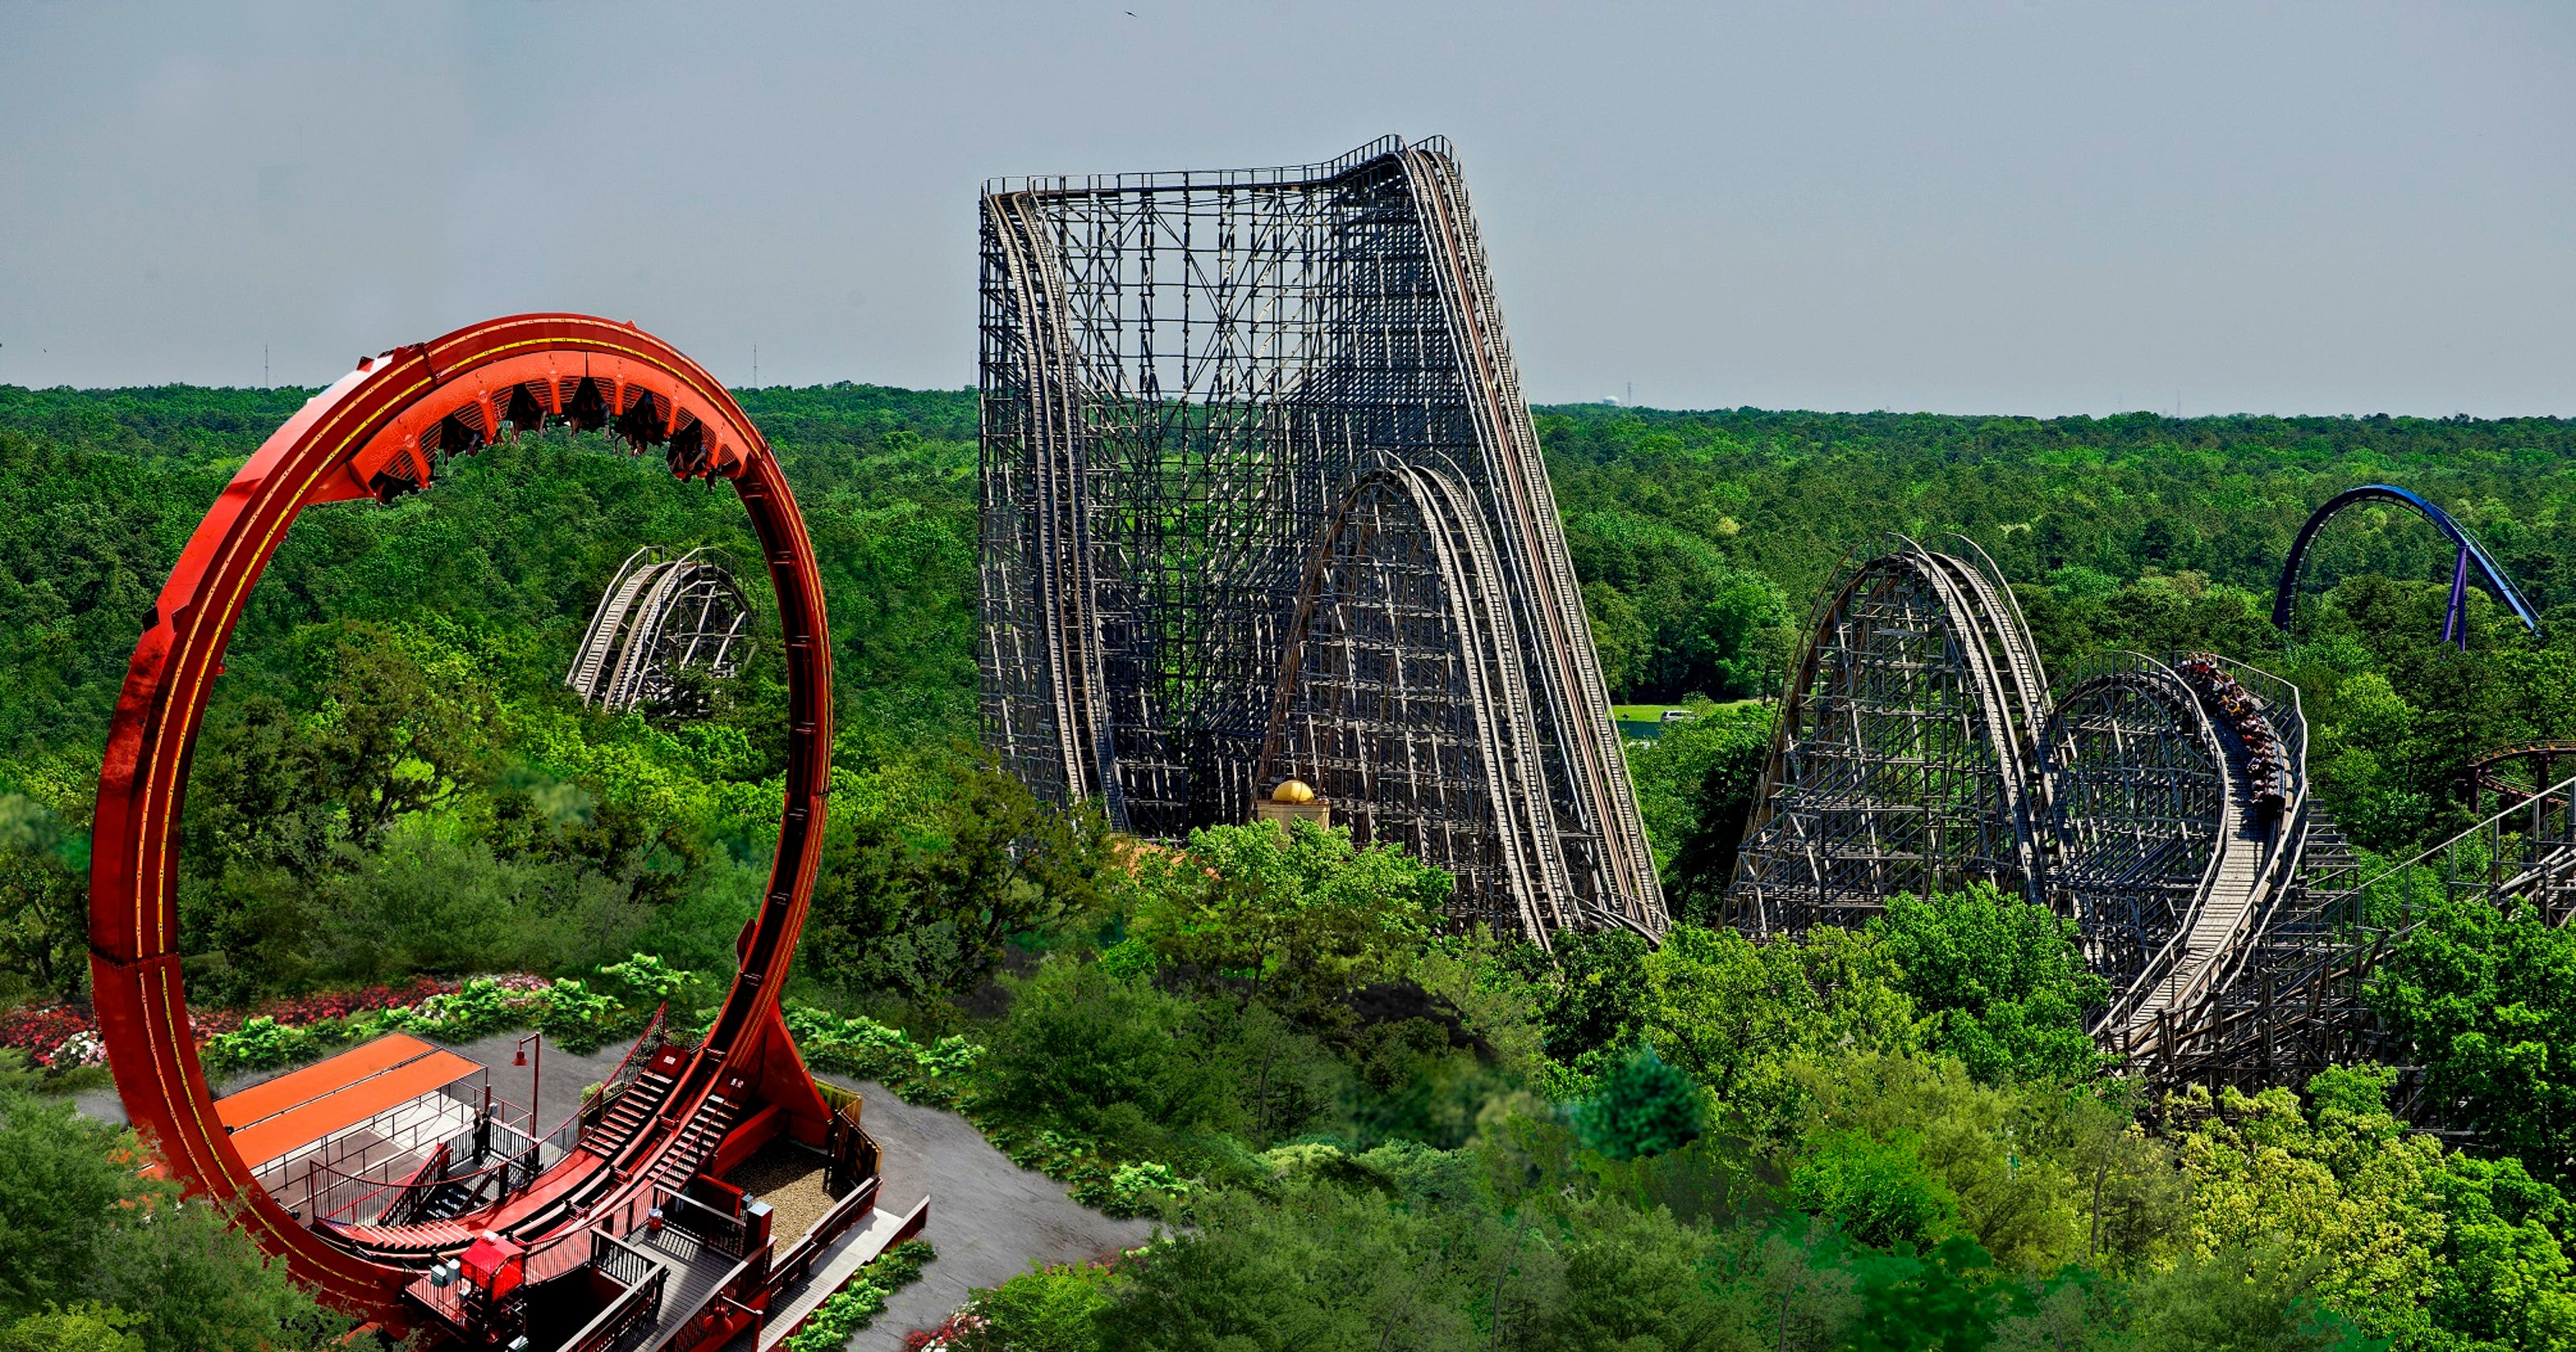 Six Flags Great Adventure reveals the Looping Dragon